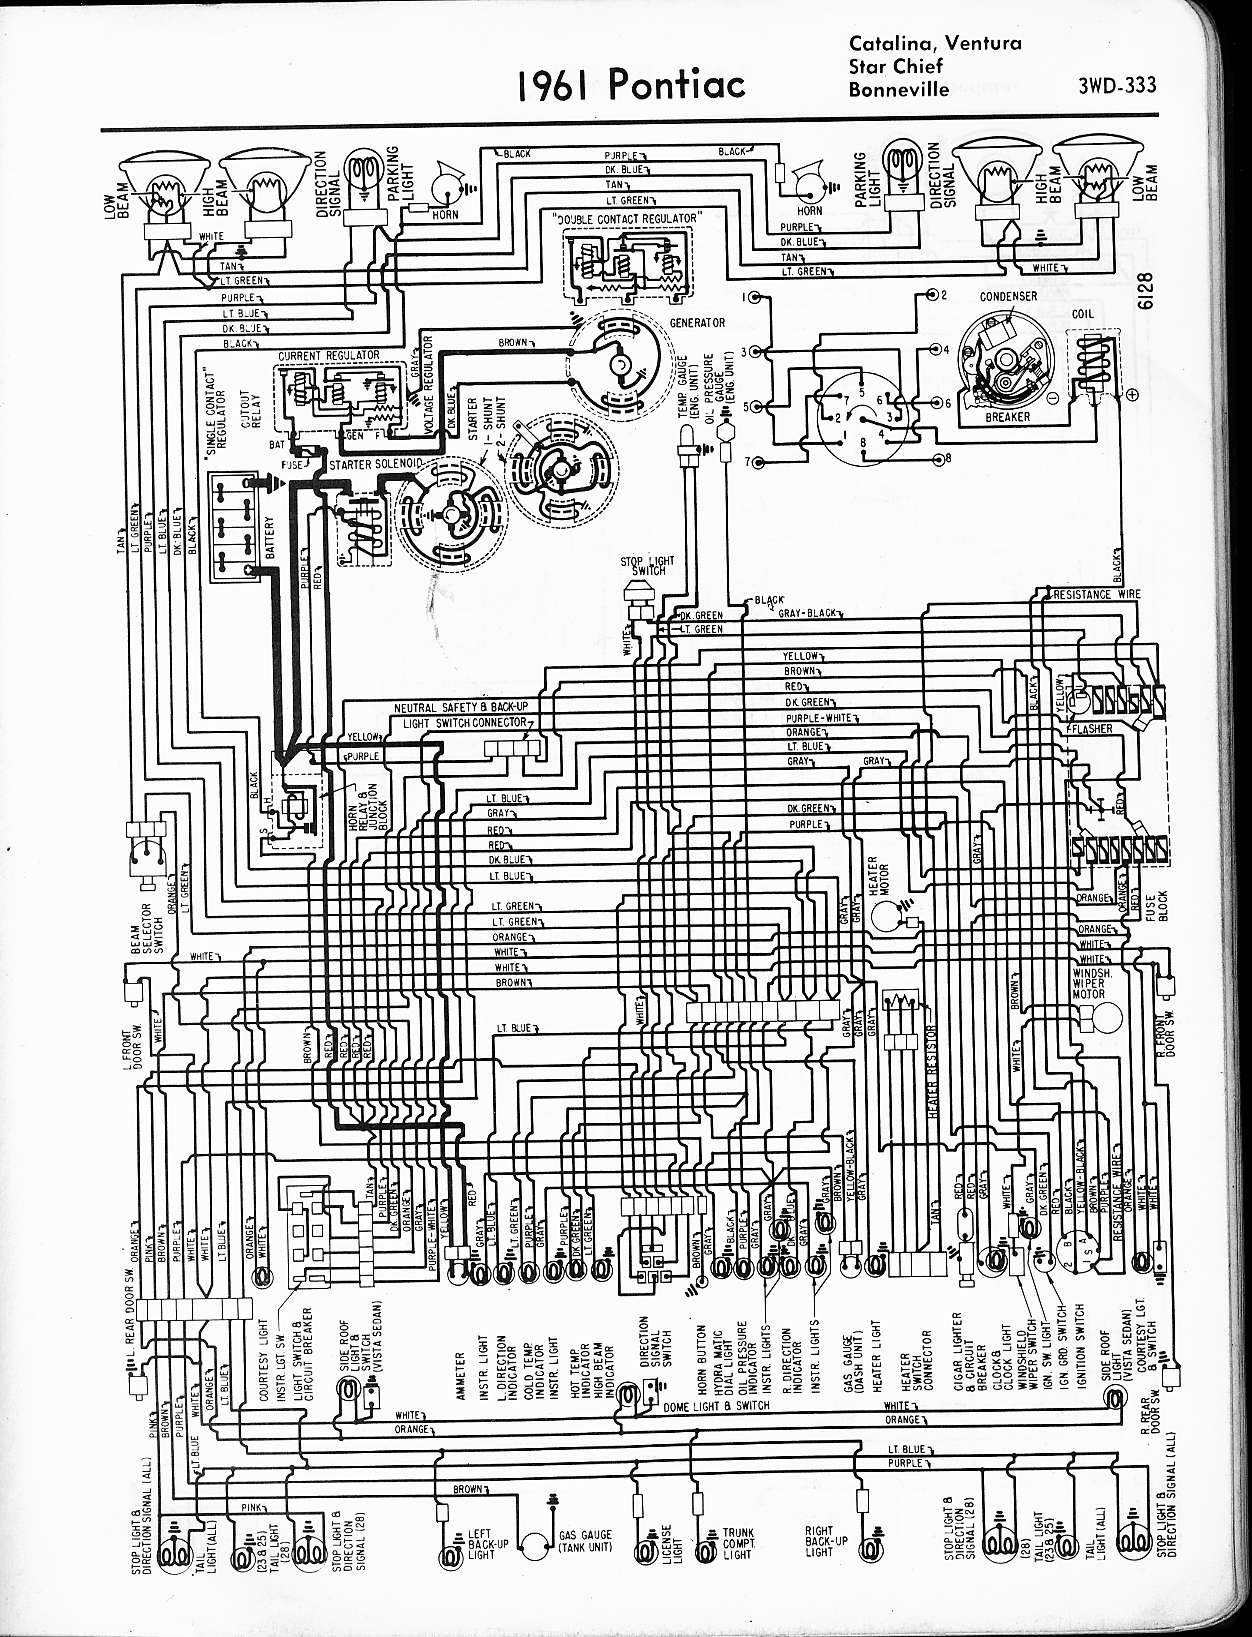 Weebly Free Wiring Diagrams The Portal And Forum Of Diagram 2002 Cadilac Escalade 1972 Ponteac Grant Sport Library Rh 69 Codingcommunity De Online